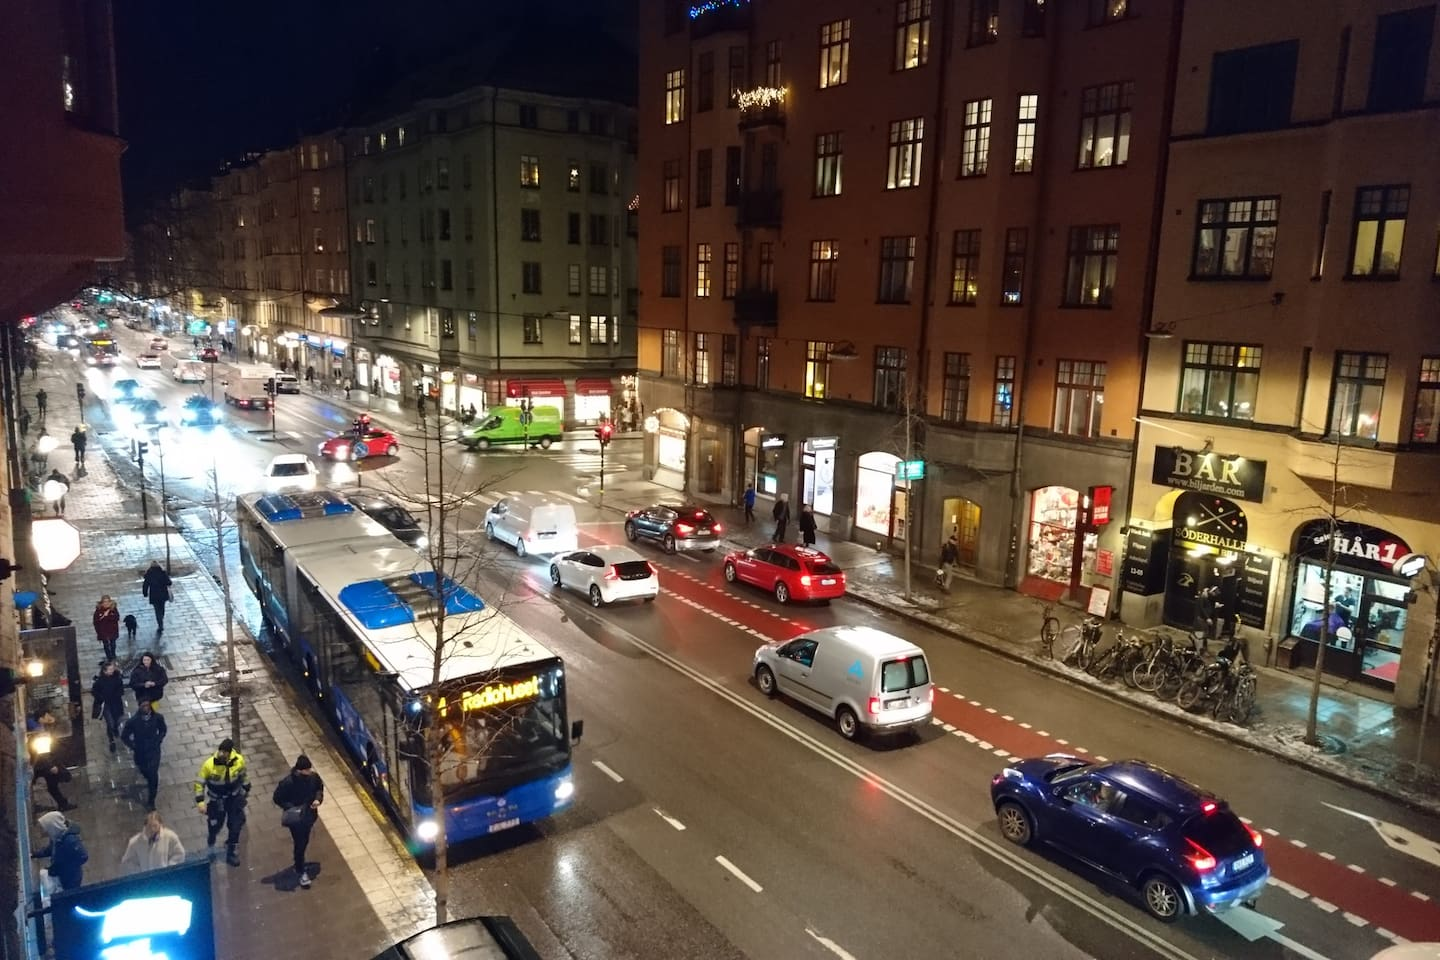 Hornsgatan is one the most liveliest streets of Södermalm, still with a genuine touch. Filled with cafés, bars, small shops and cheap places to eat.